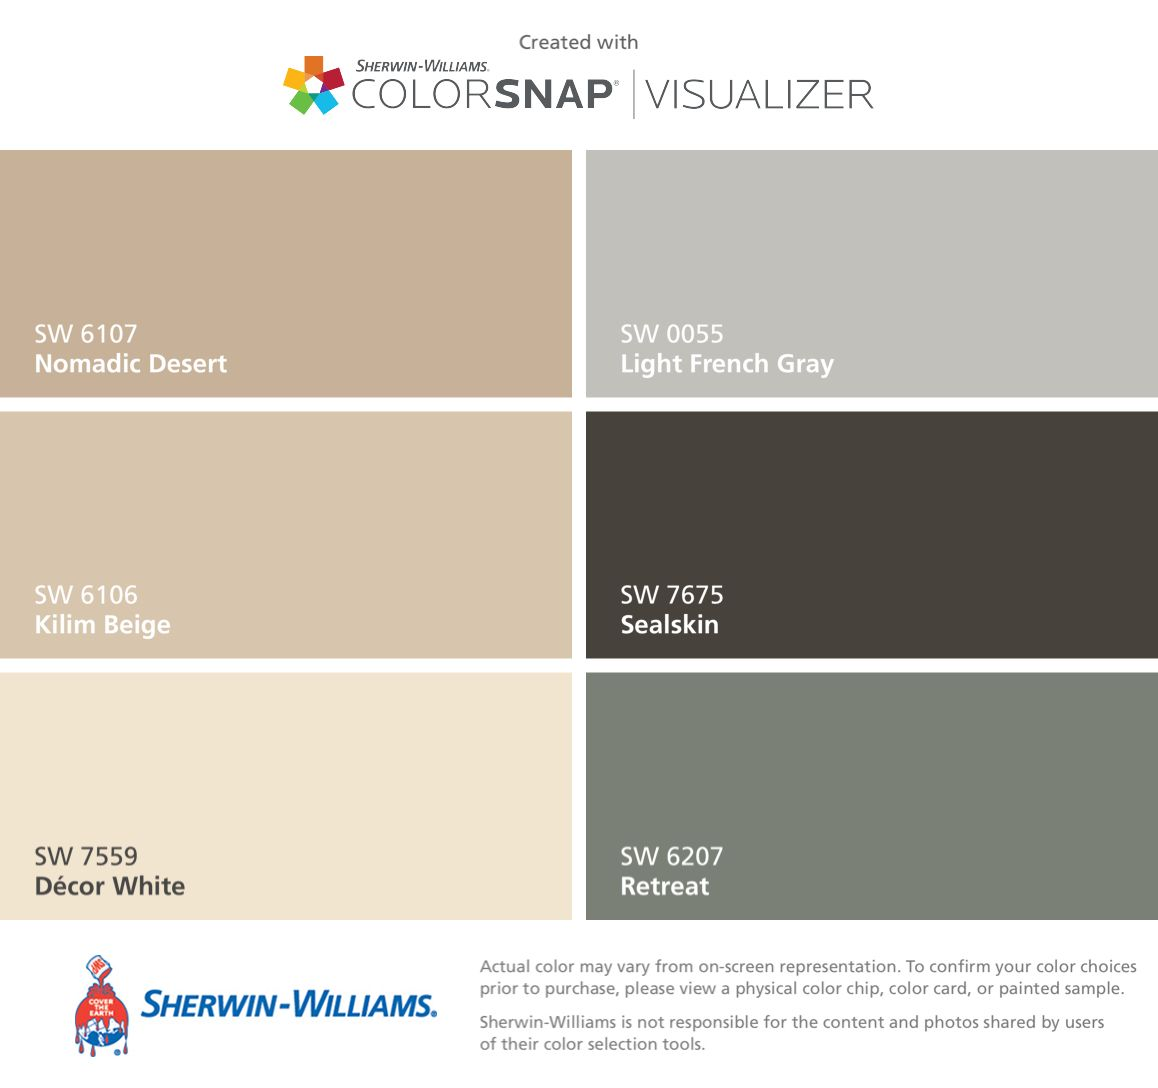 Horrible Iphone By Sherwin Williams Kilim Beige Reviews Sherwin Williams Kilim Beige 6106 I Found Se Colors Visualizer Visualizer Iphone By Nomadic Desert Kilim Beige Dcor I Found Se Colors houzz-03 Sherwin Williams Kilim Beige